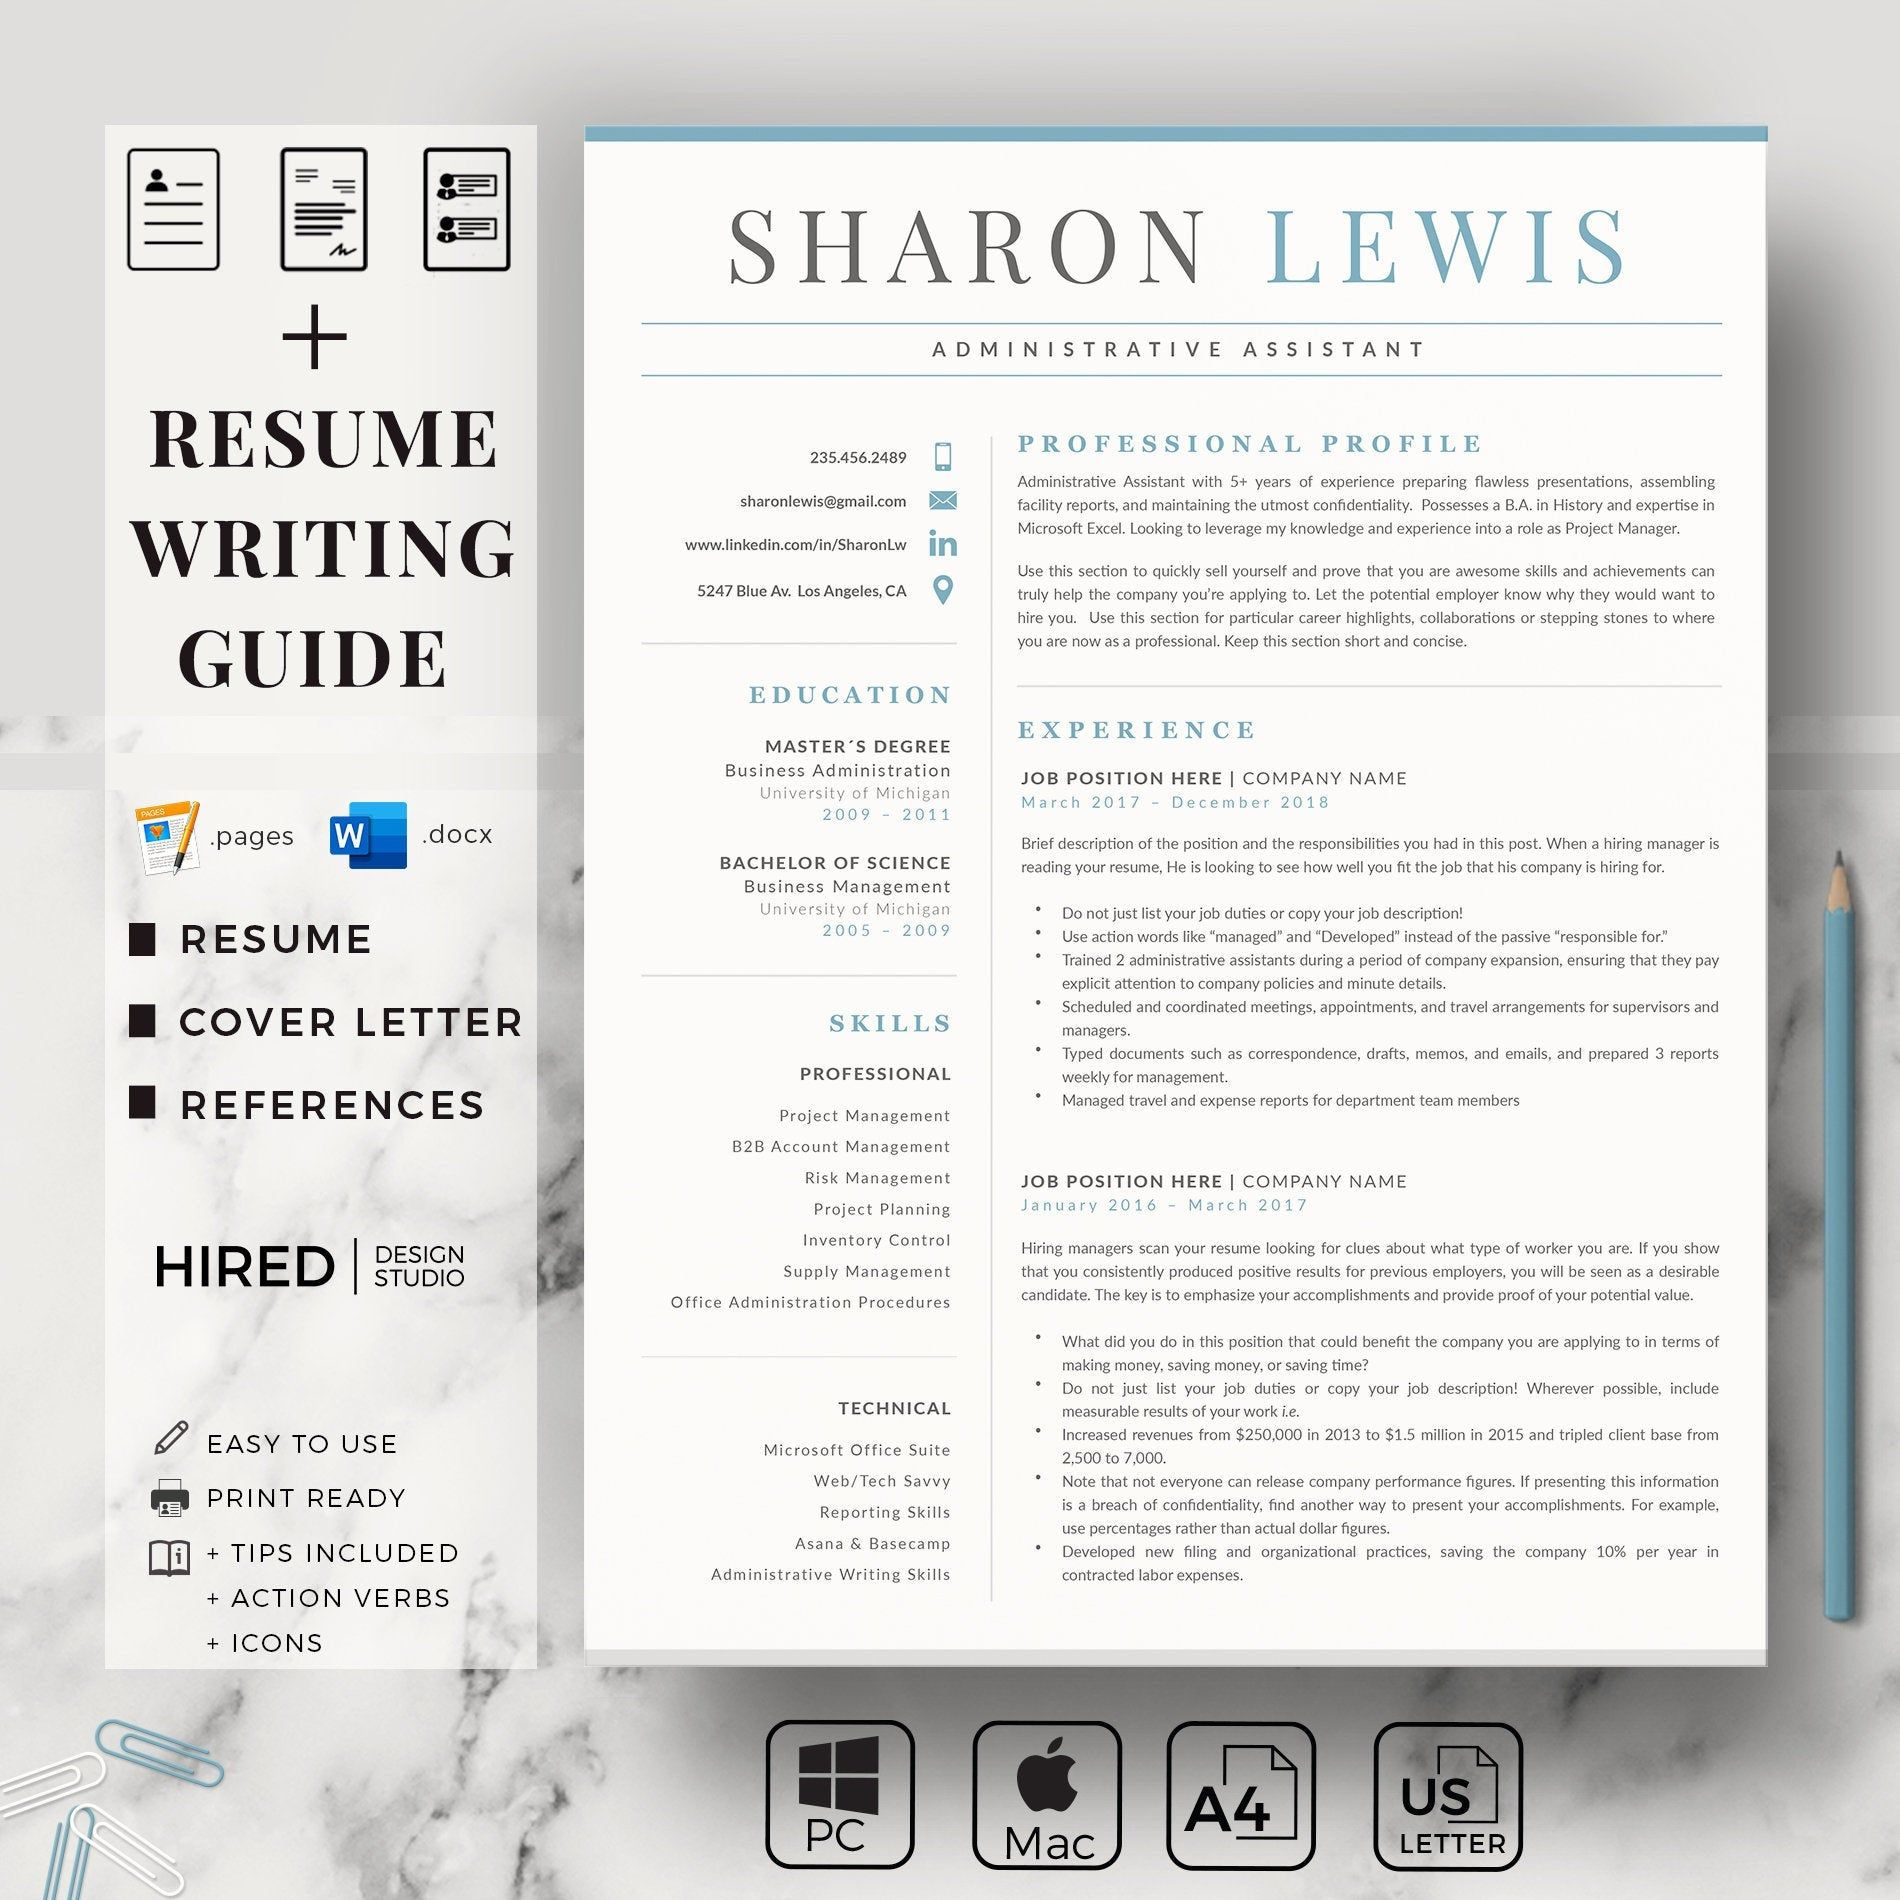 Executive administrative assistant resume template for ms